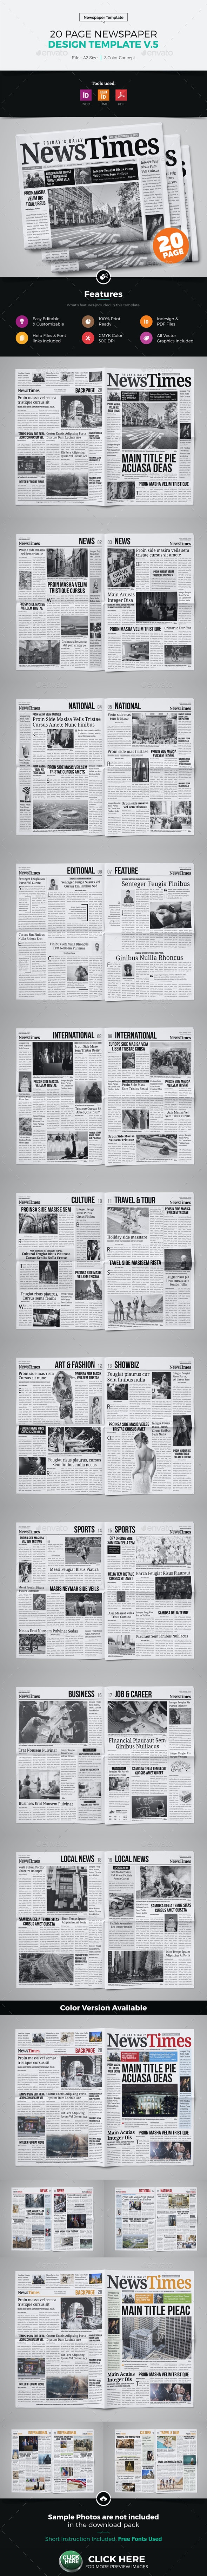 20 Page Newspaper Design v5 - Newsletters Print Templates